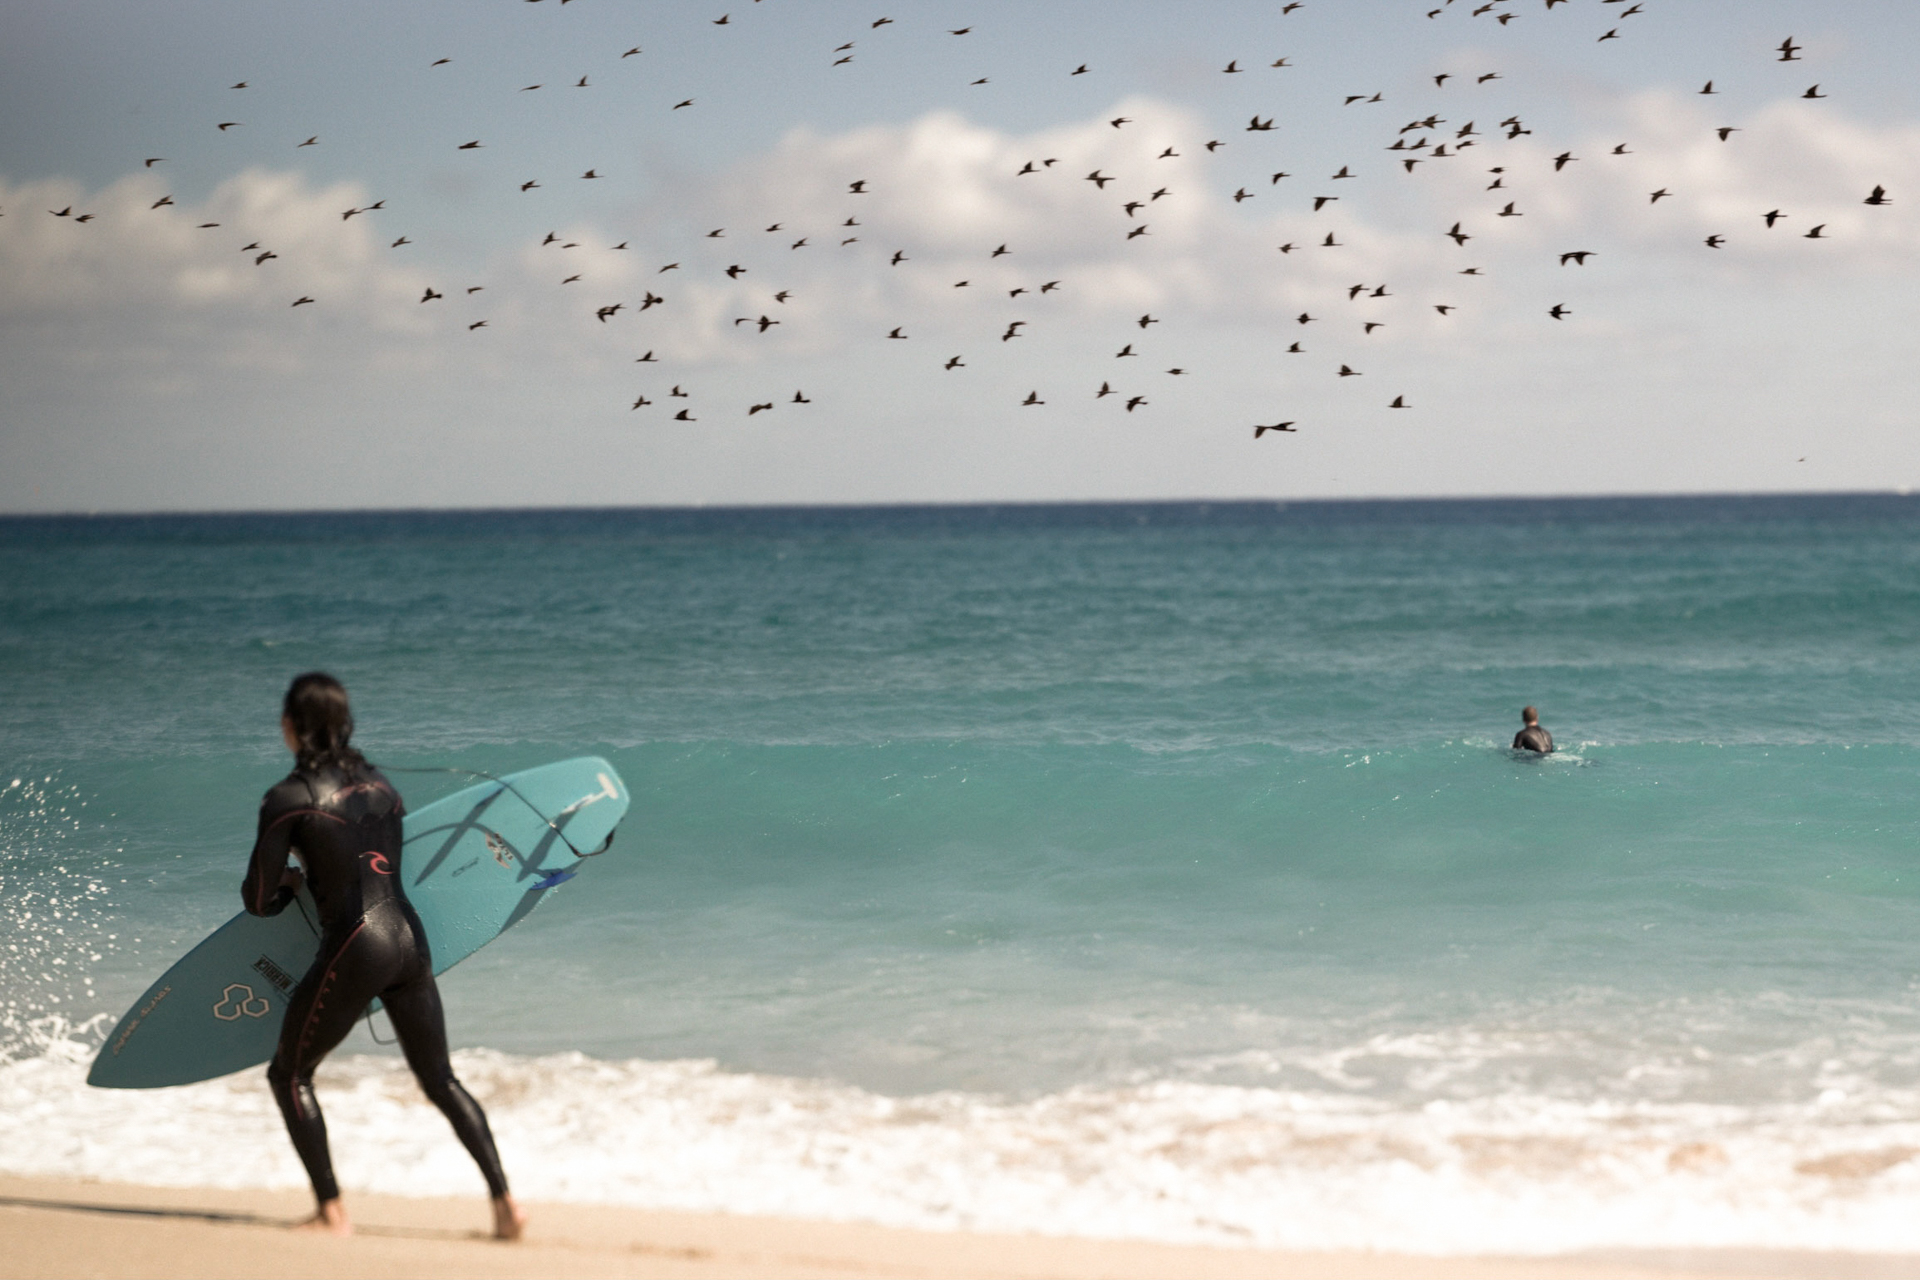 Surfing with the birds